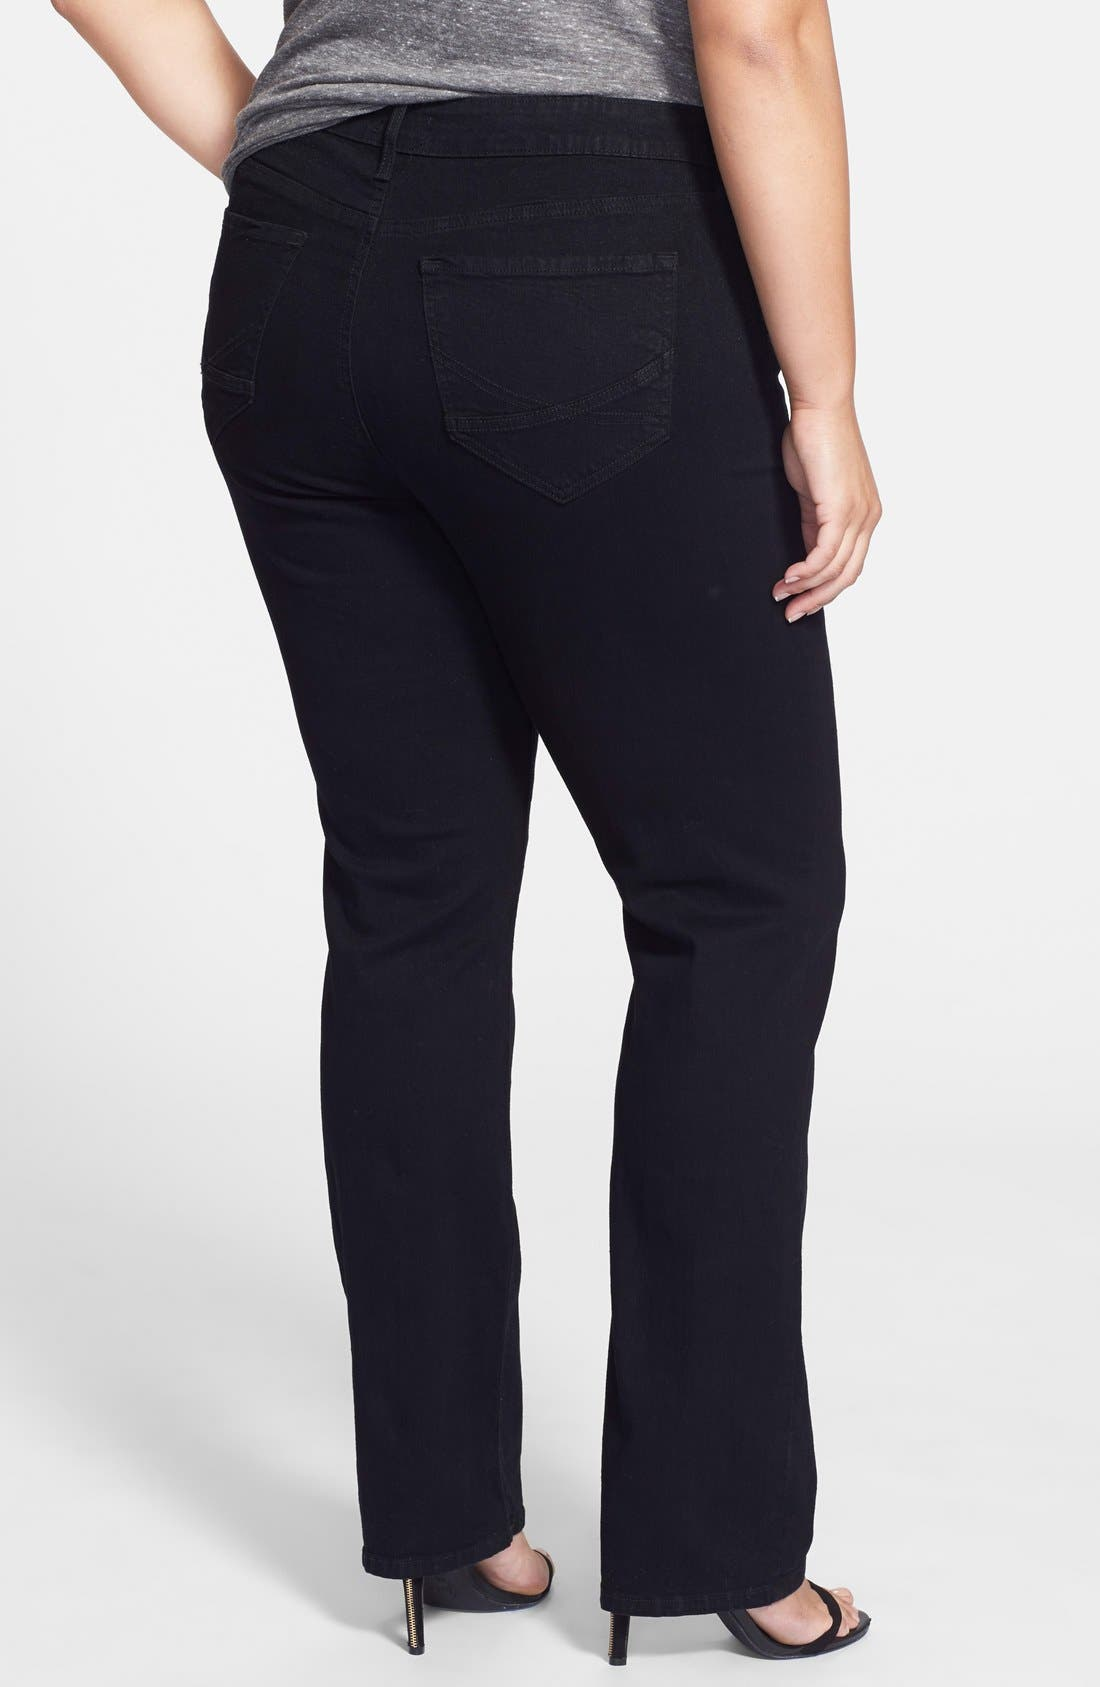 'Marilyn' Stretch Straight Leg Jeans,                             Alternate thumbnail 2, color,                             Black